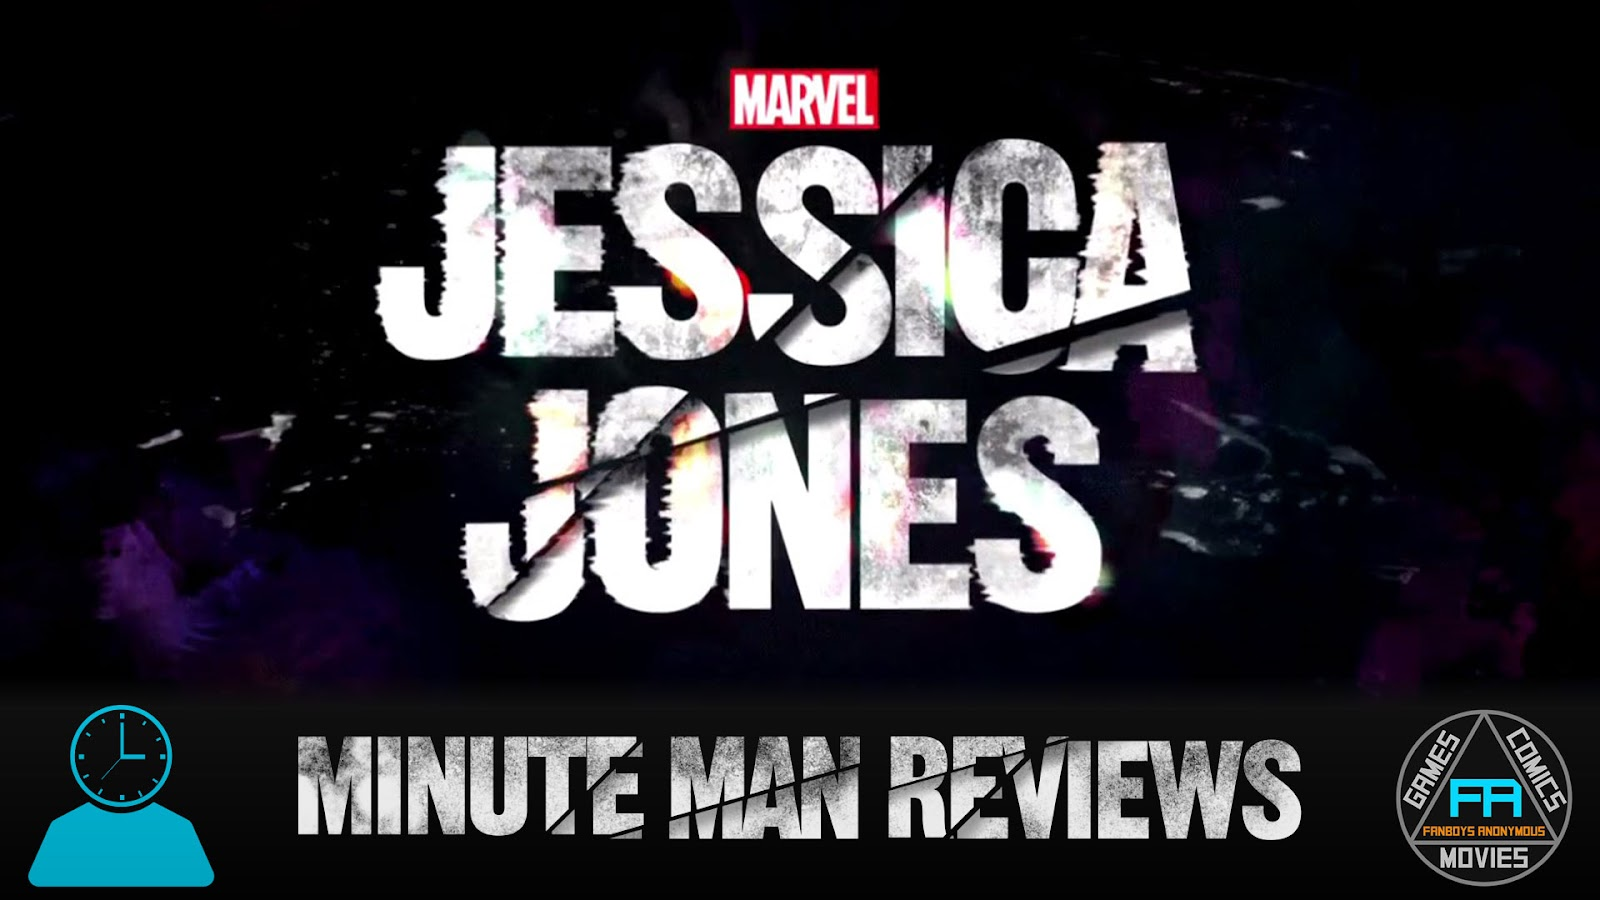 TV review Marvel's Jessica Jones Season 1 podcast